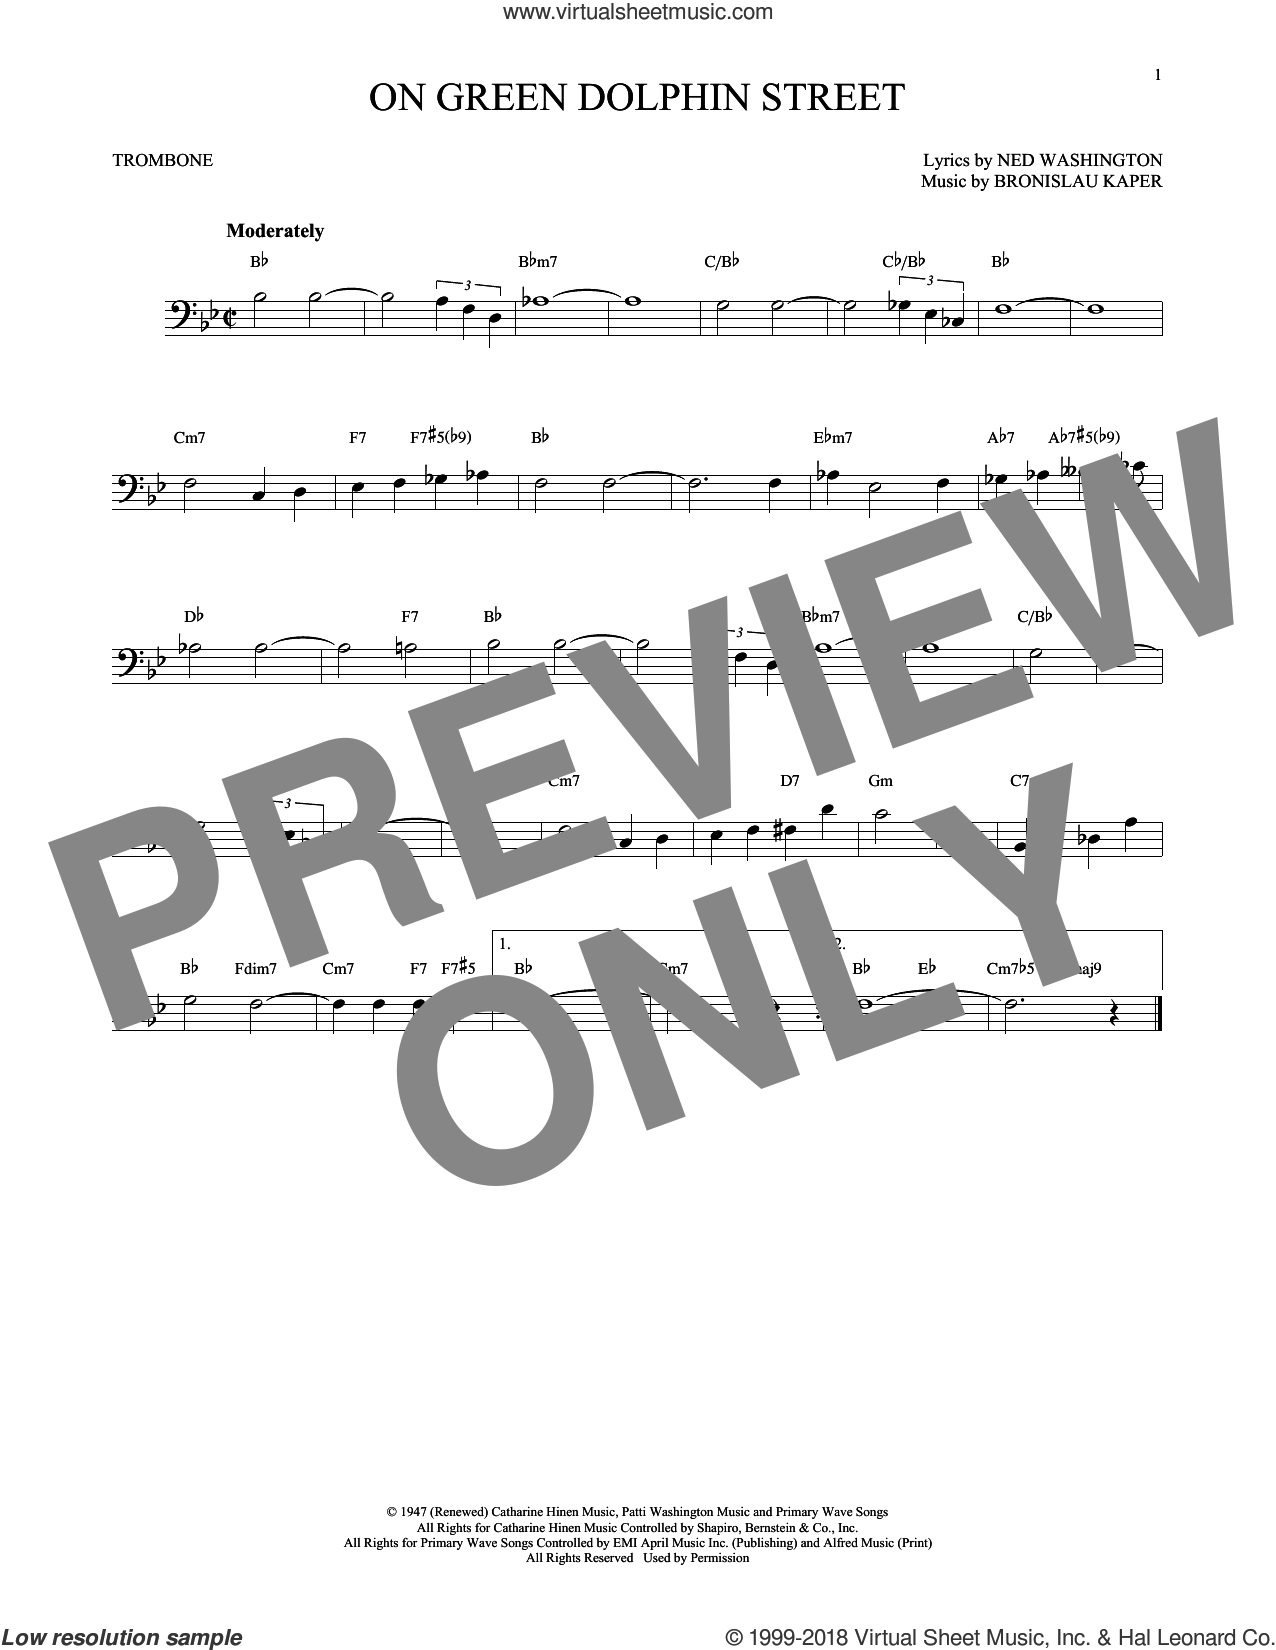 On Green Dolphin Street sheet music for trombone solo by Ned Washington and Bronislau Kaper. Score Image Preview.